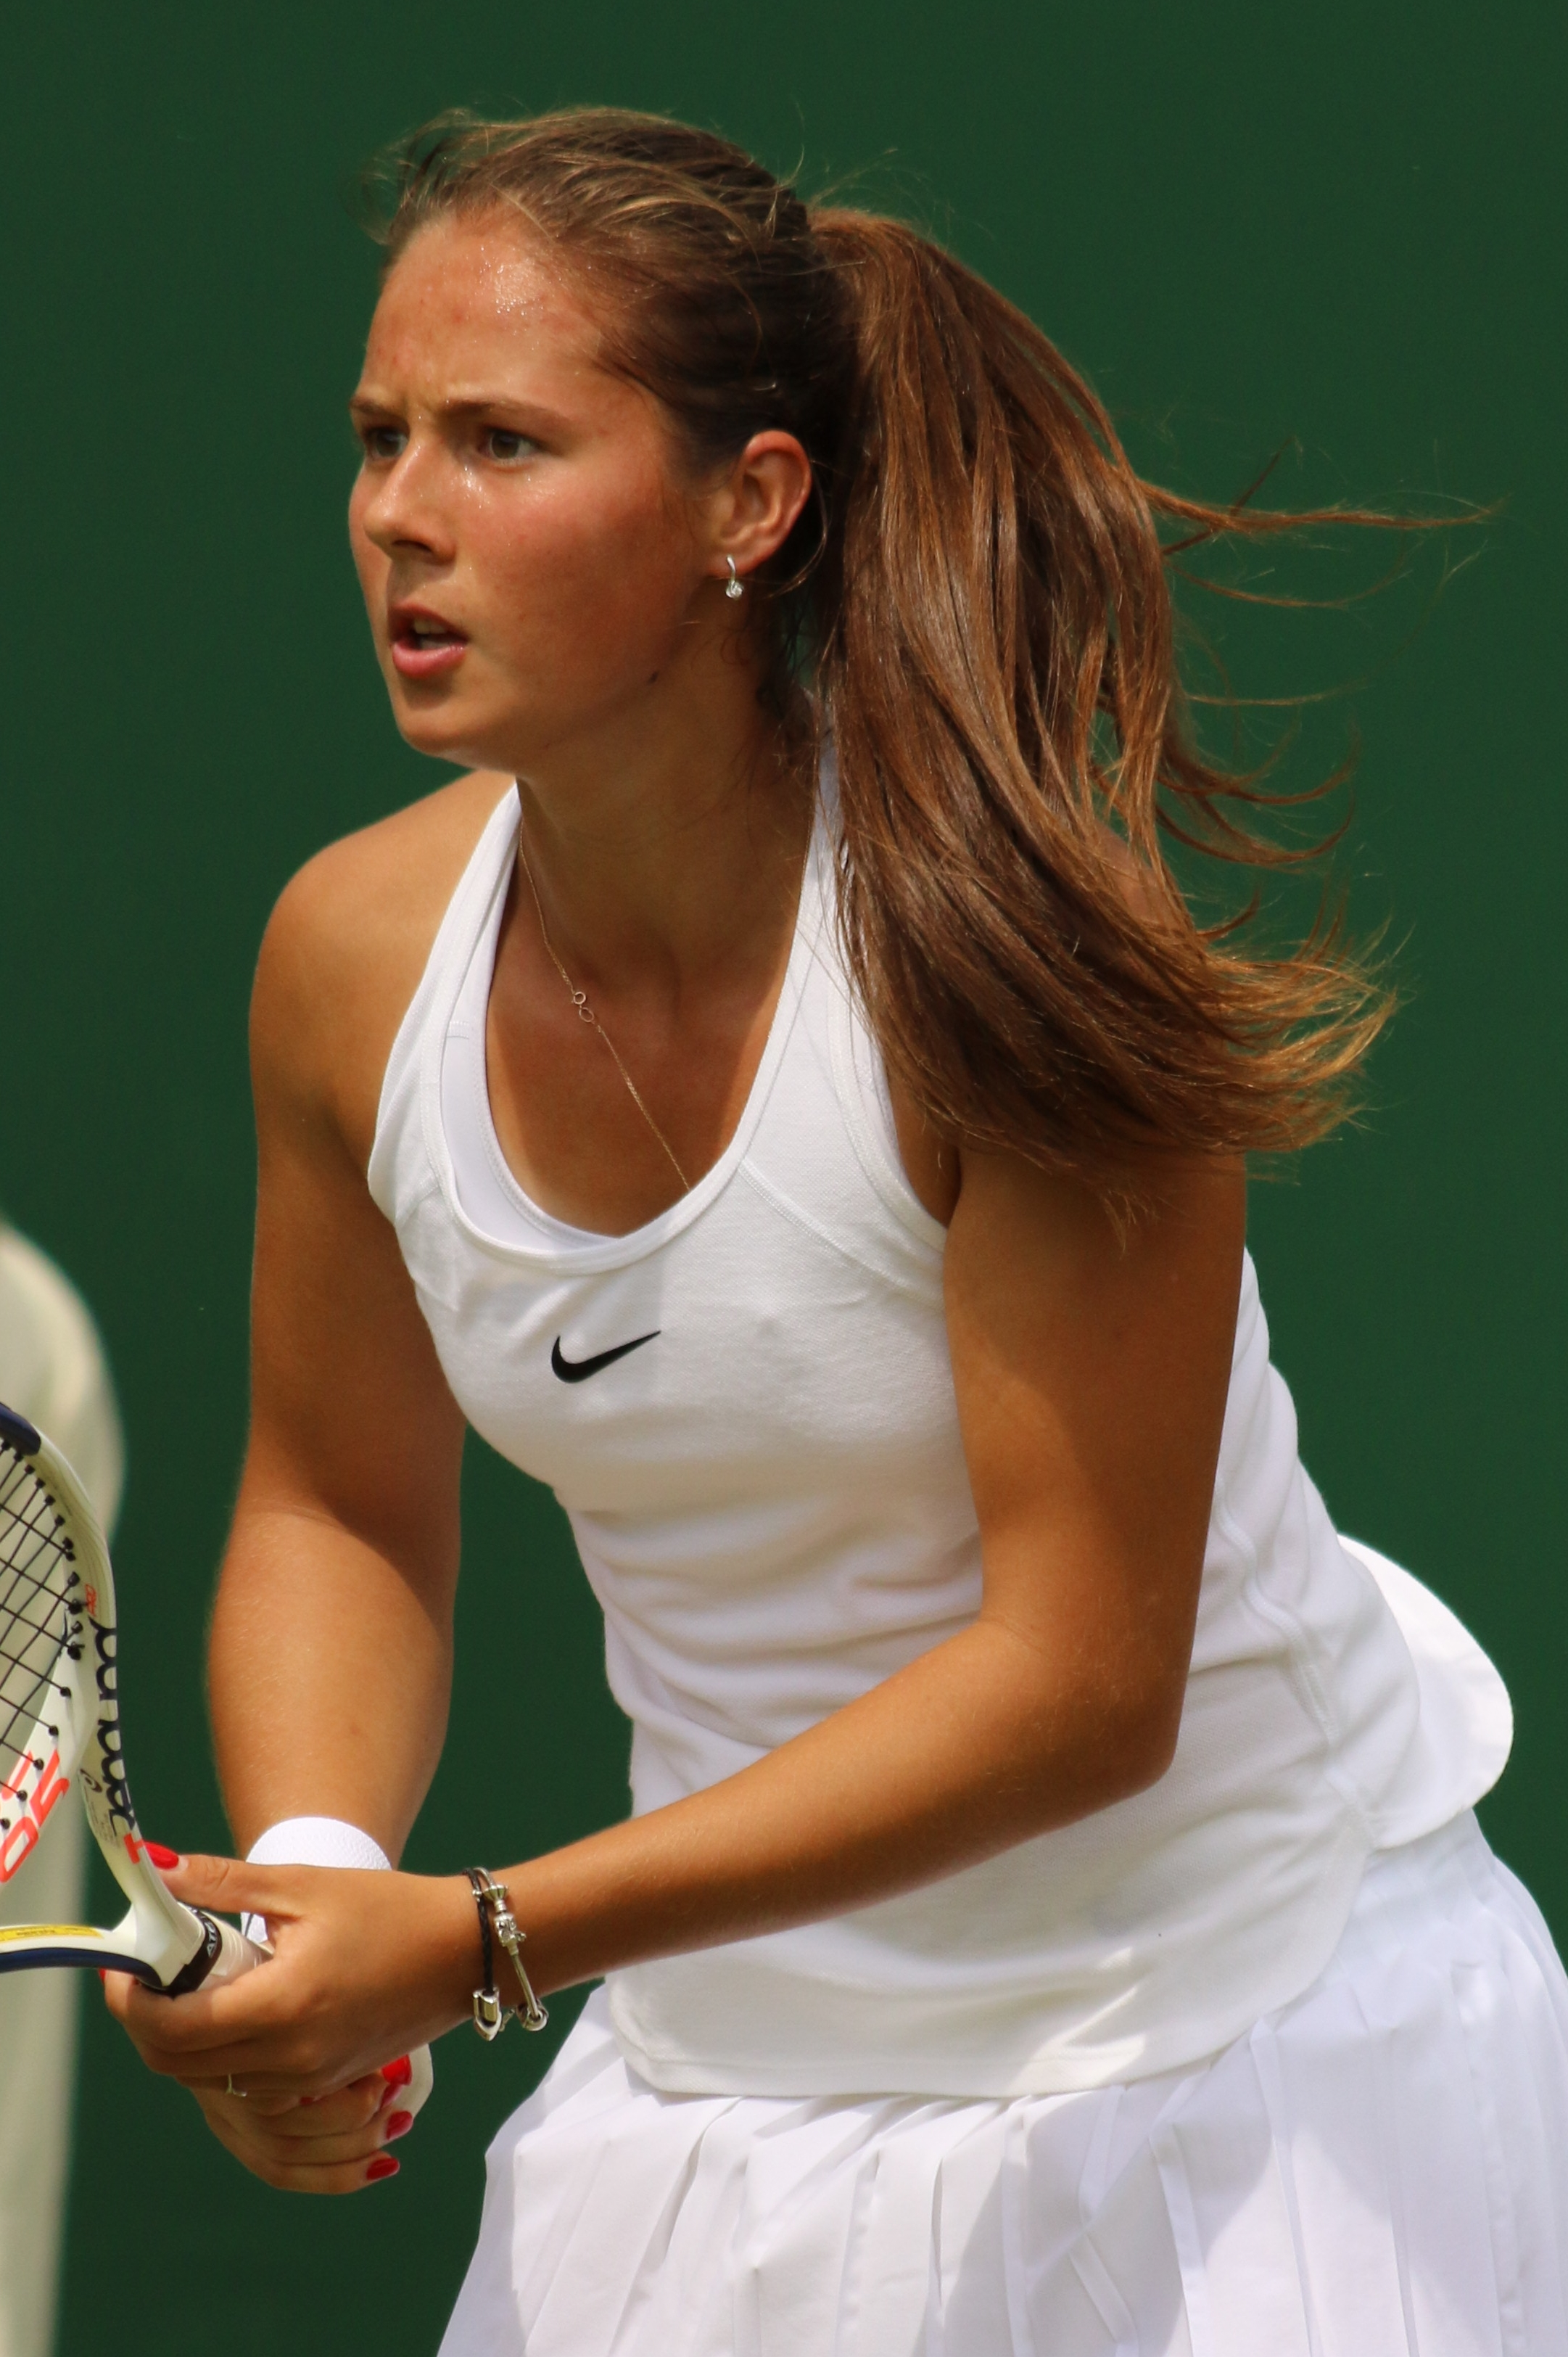 kasatkina - photo #12